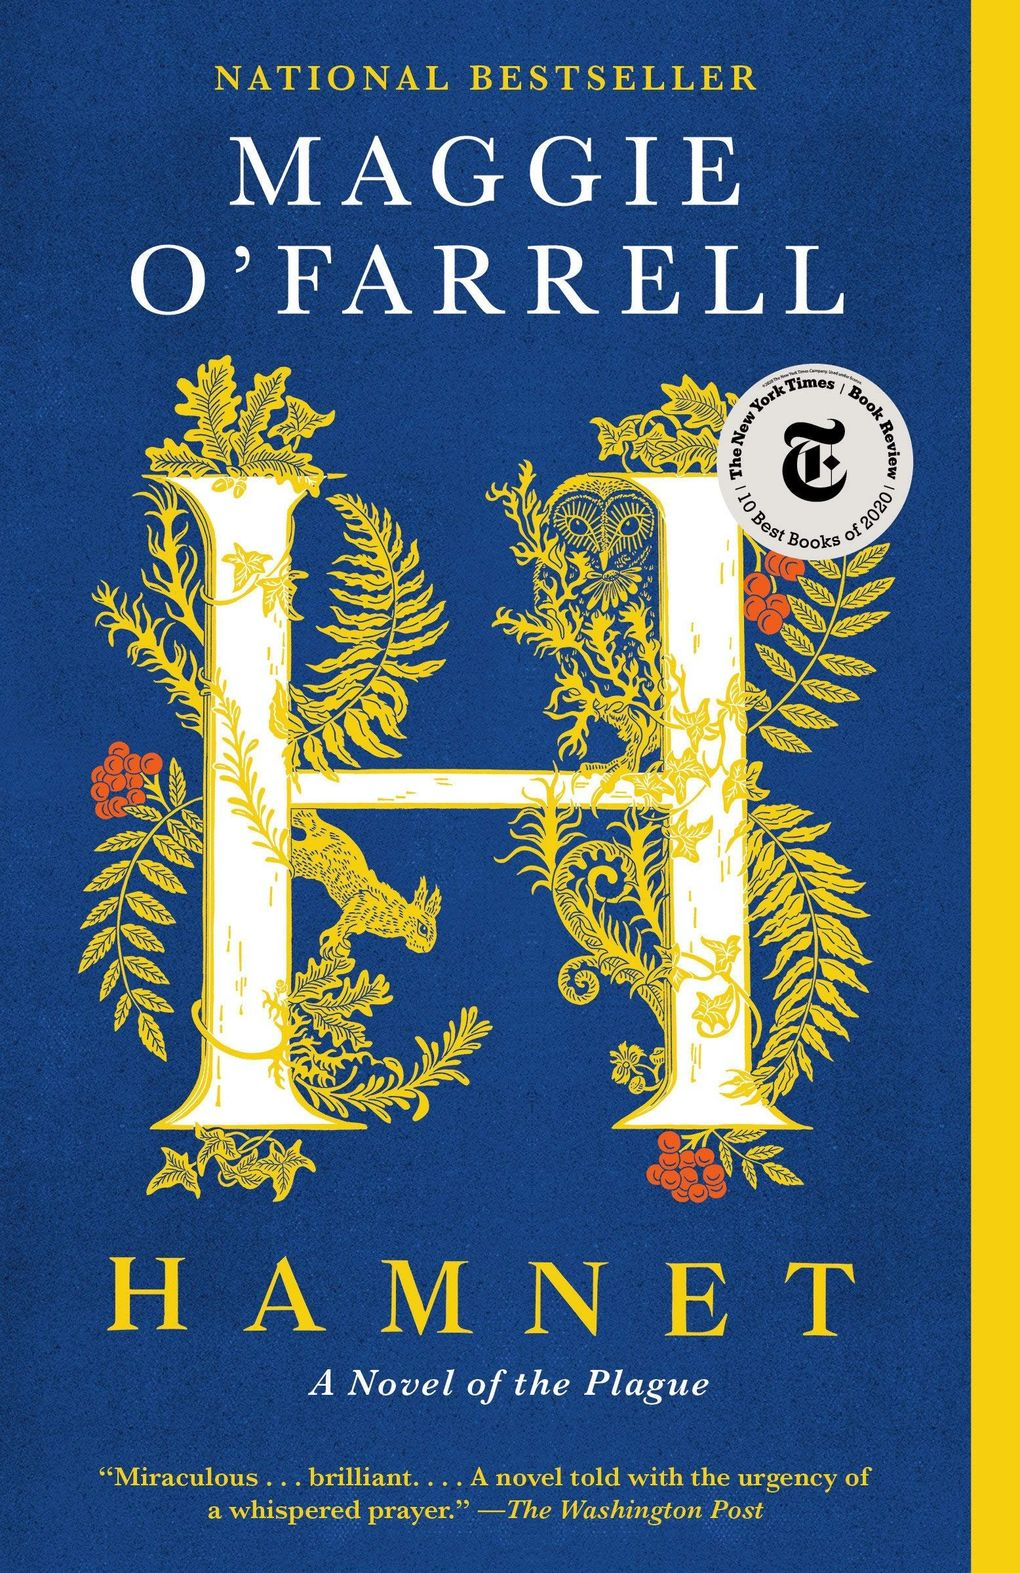 """""""Hamnet"""" by Maggie O'Farrell (Vintage)"""